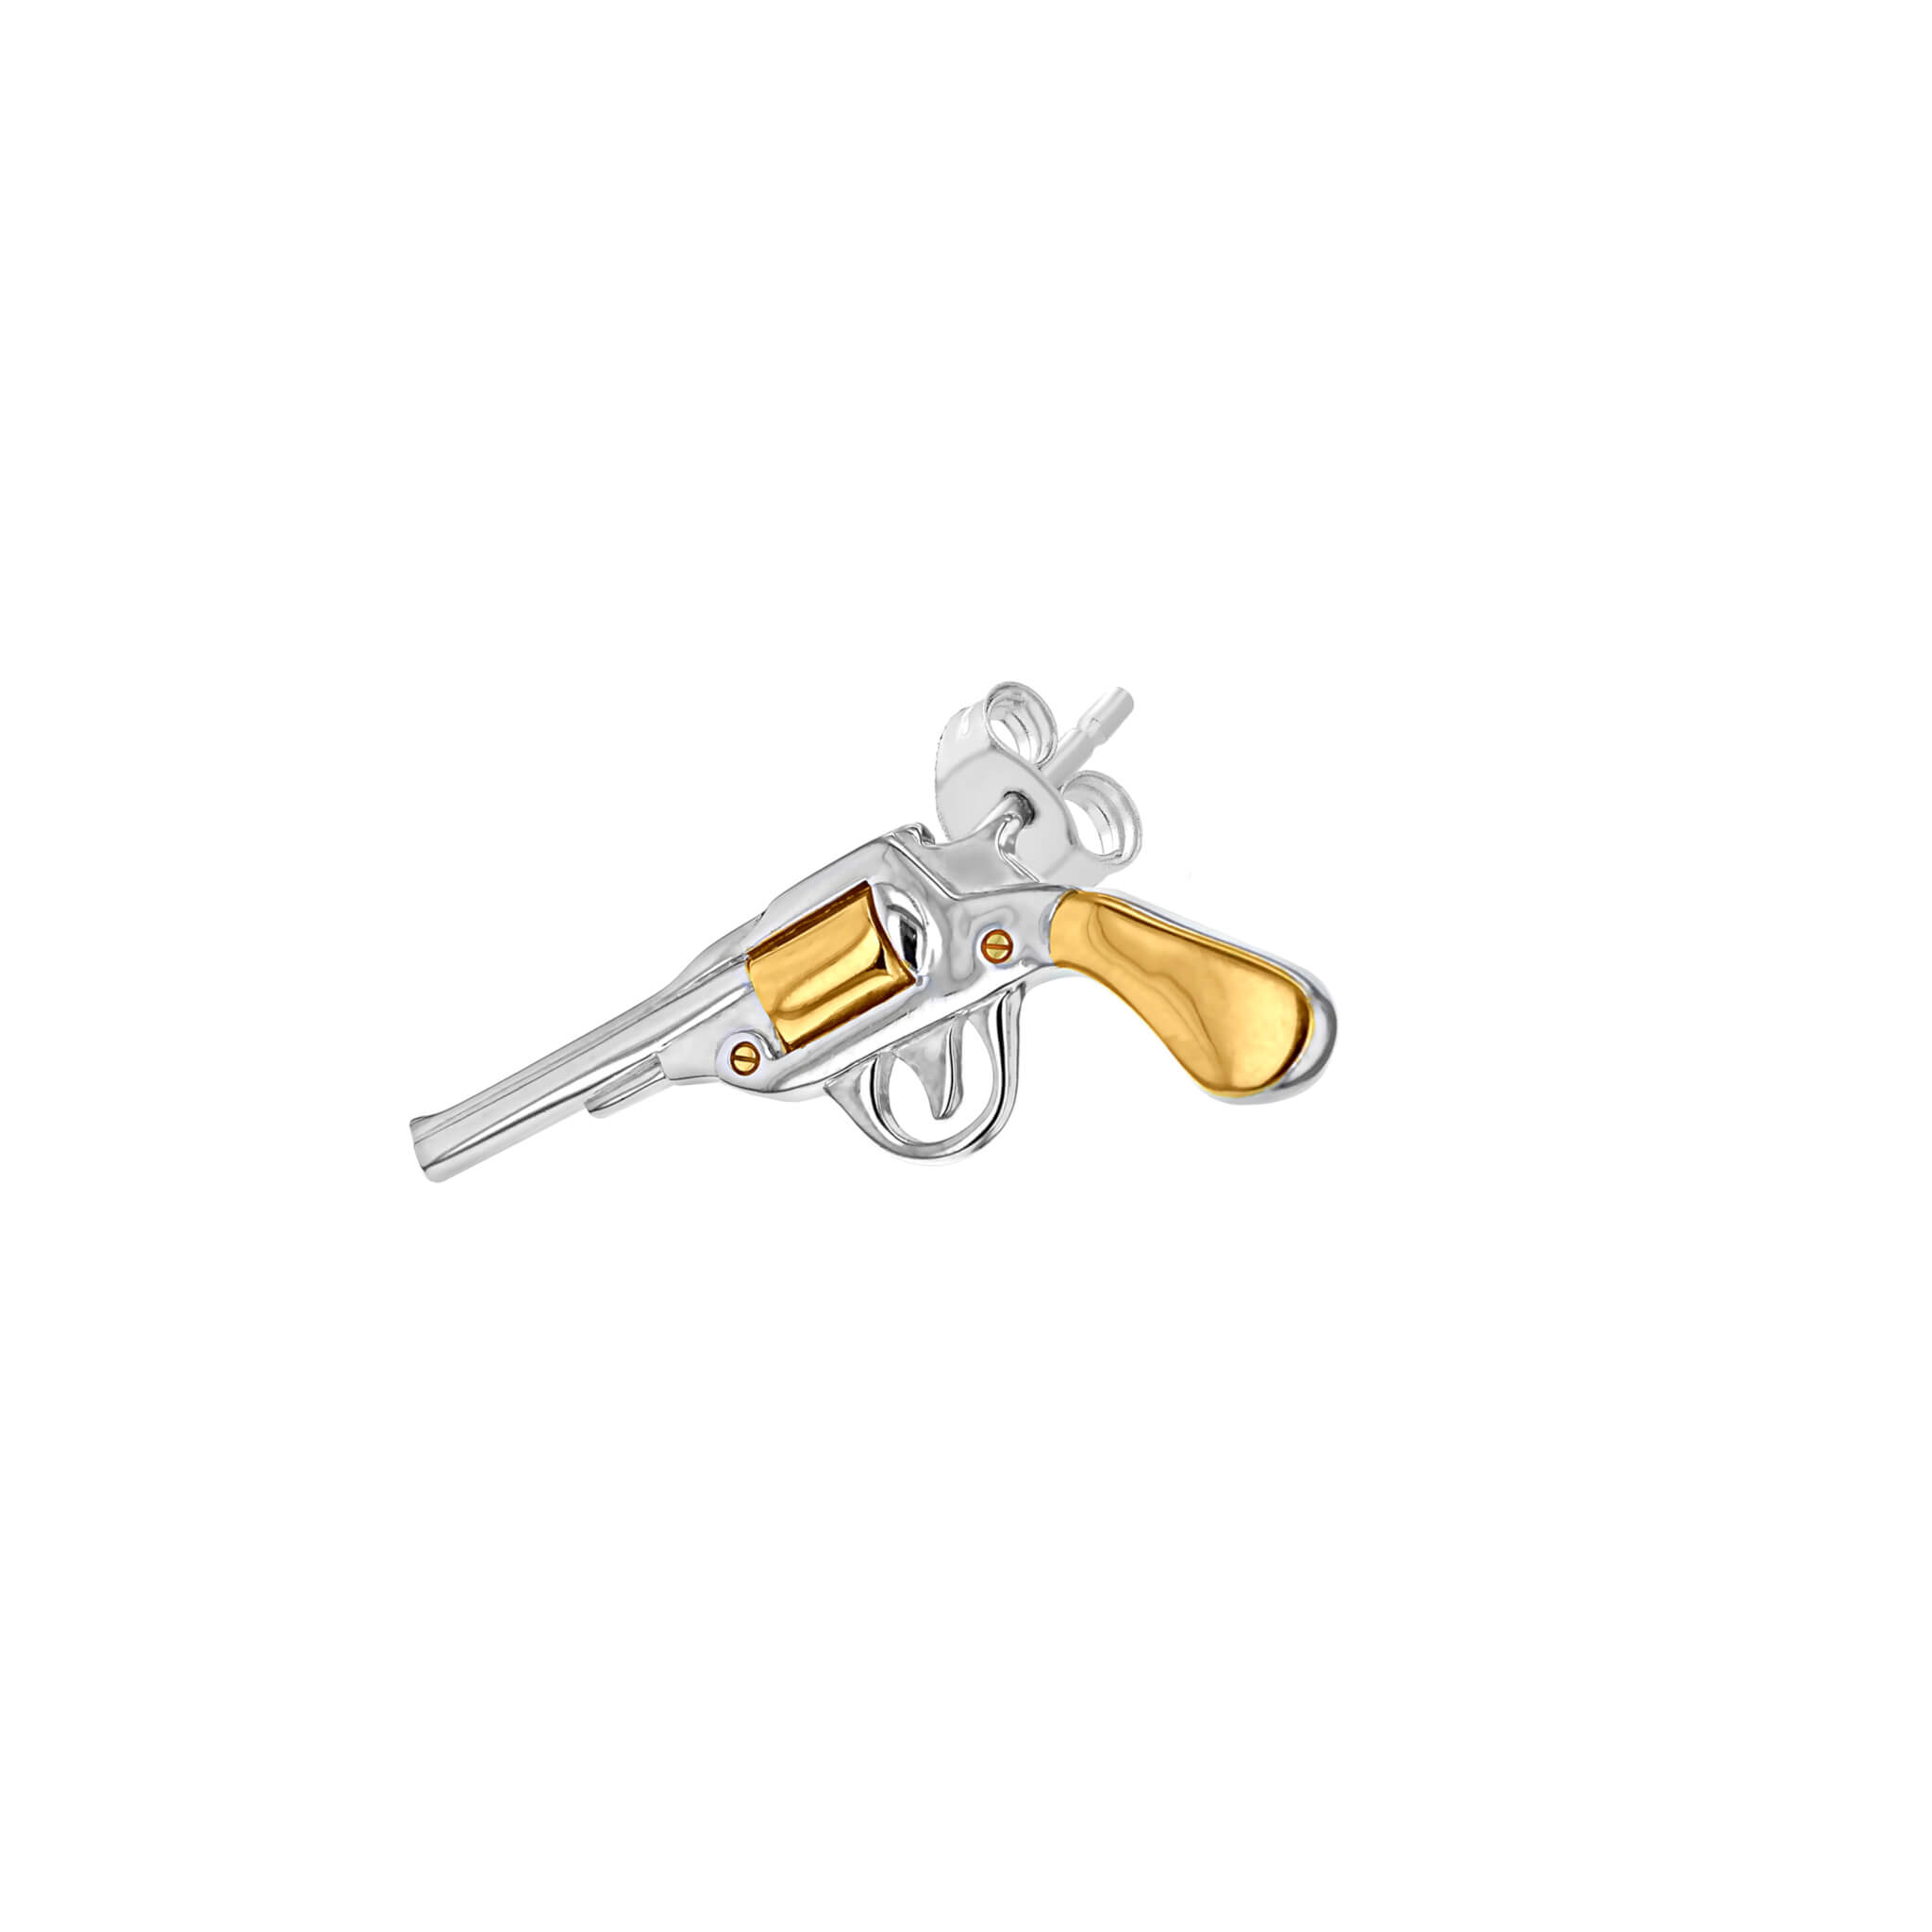 Stud 2-Tone Silver & Gold Pistol for left ear